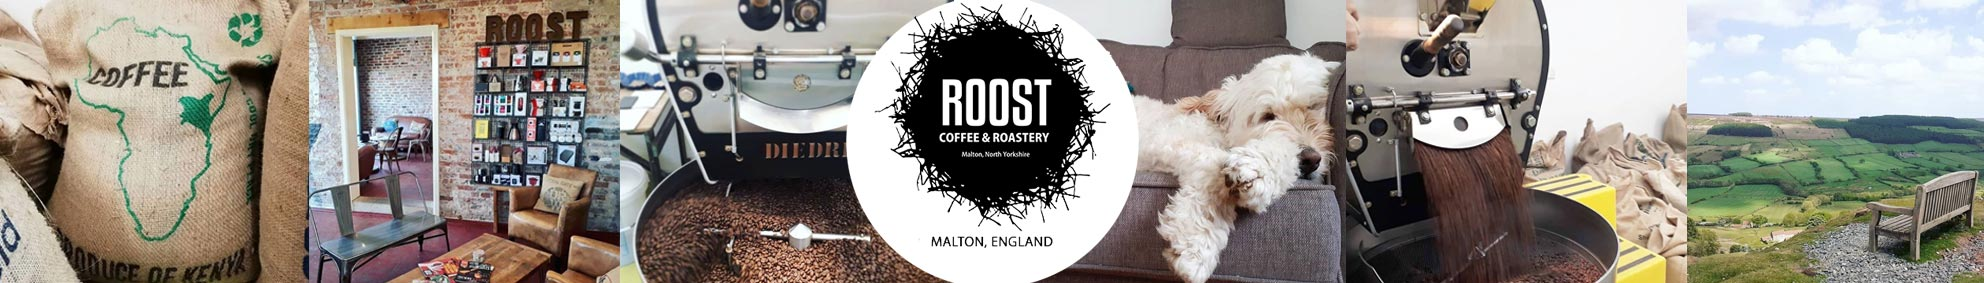 Roost Coffee Speciality Coffee Roaster Yorkshire on our Coffee Subscription